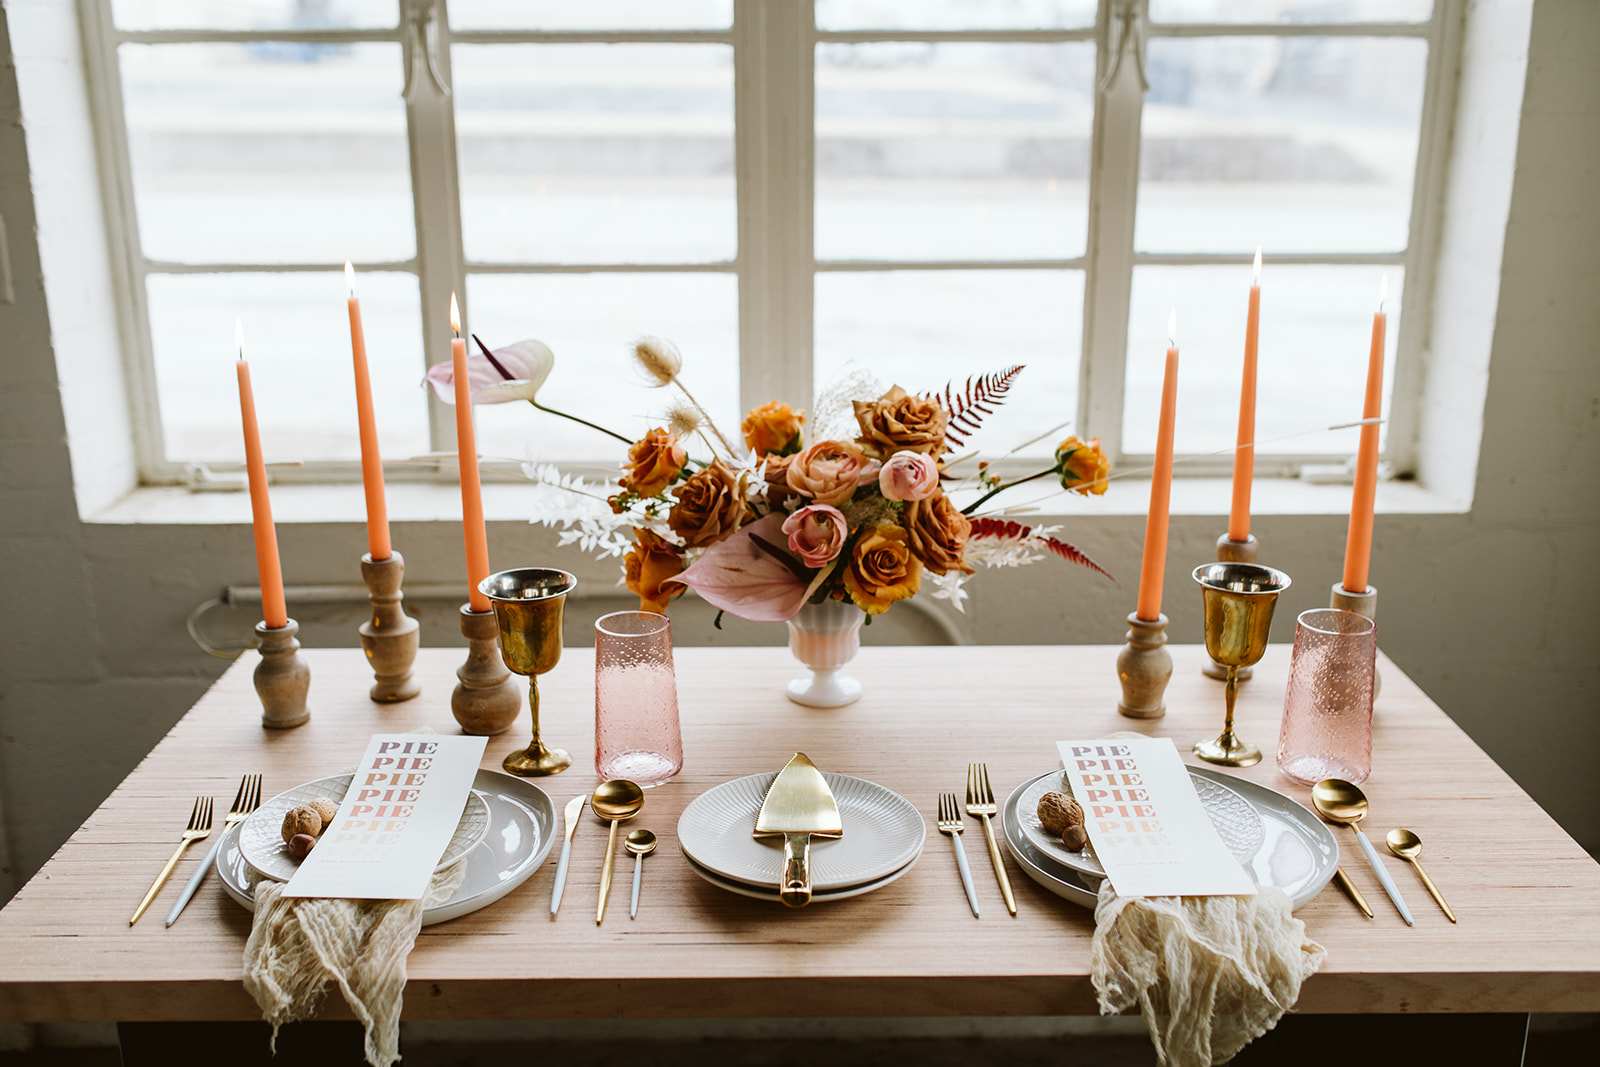 fall tablescape. fall wedding. peach wedding. peach table. peach decor. wedding deserts. reception decor. reception table. tablescapes. elopement table. intimate meal. wedding reception. reception with pies. moody colors. light and airy reception. modern reception. gold details. vintage table setting. boho tablescape. color of the year 2019.